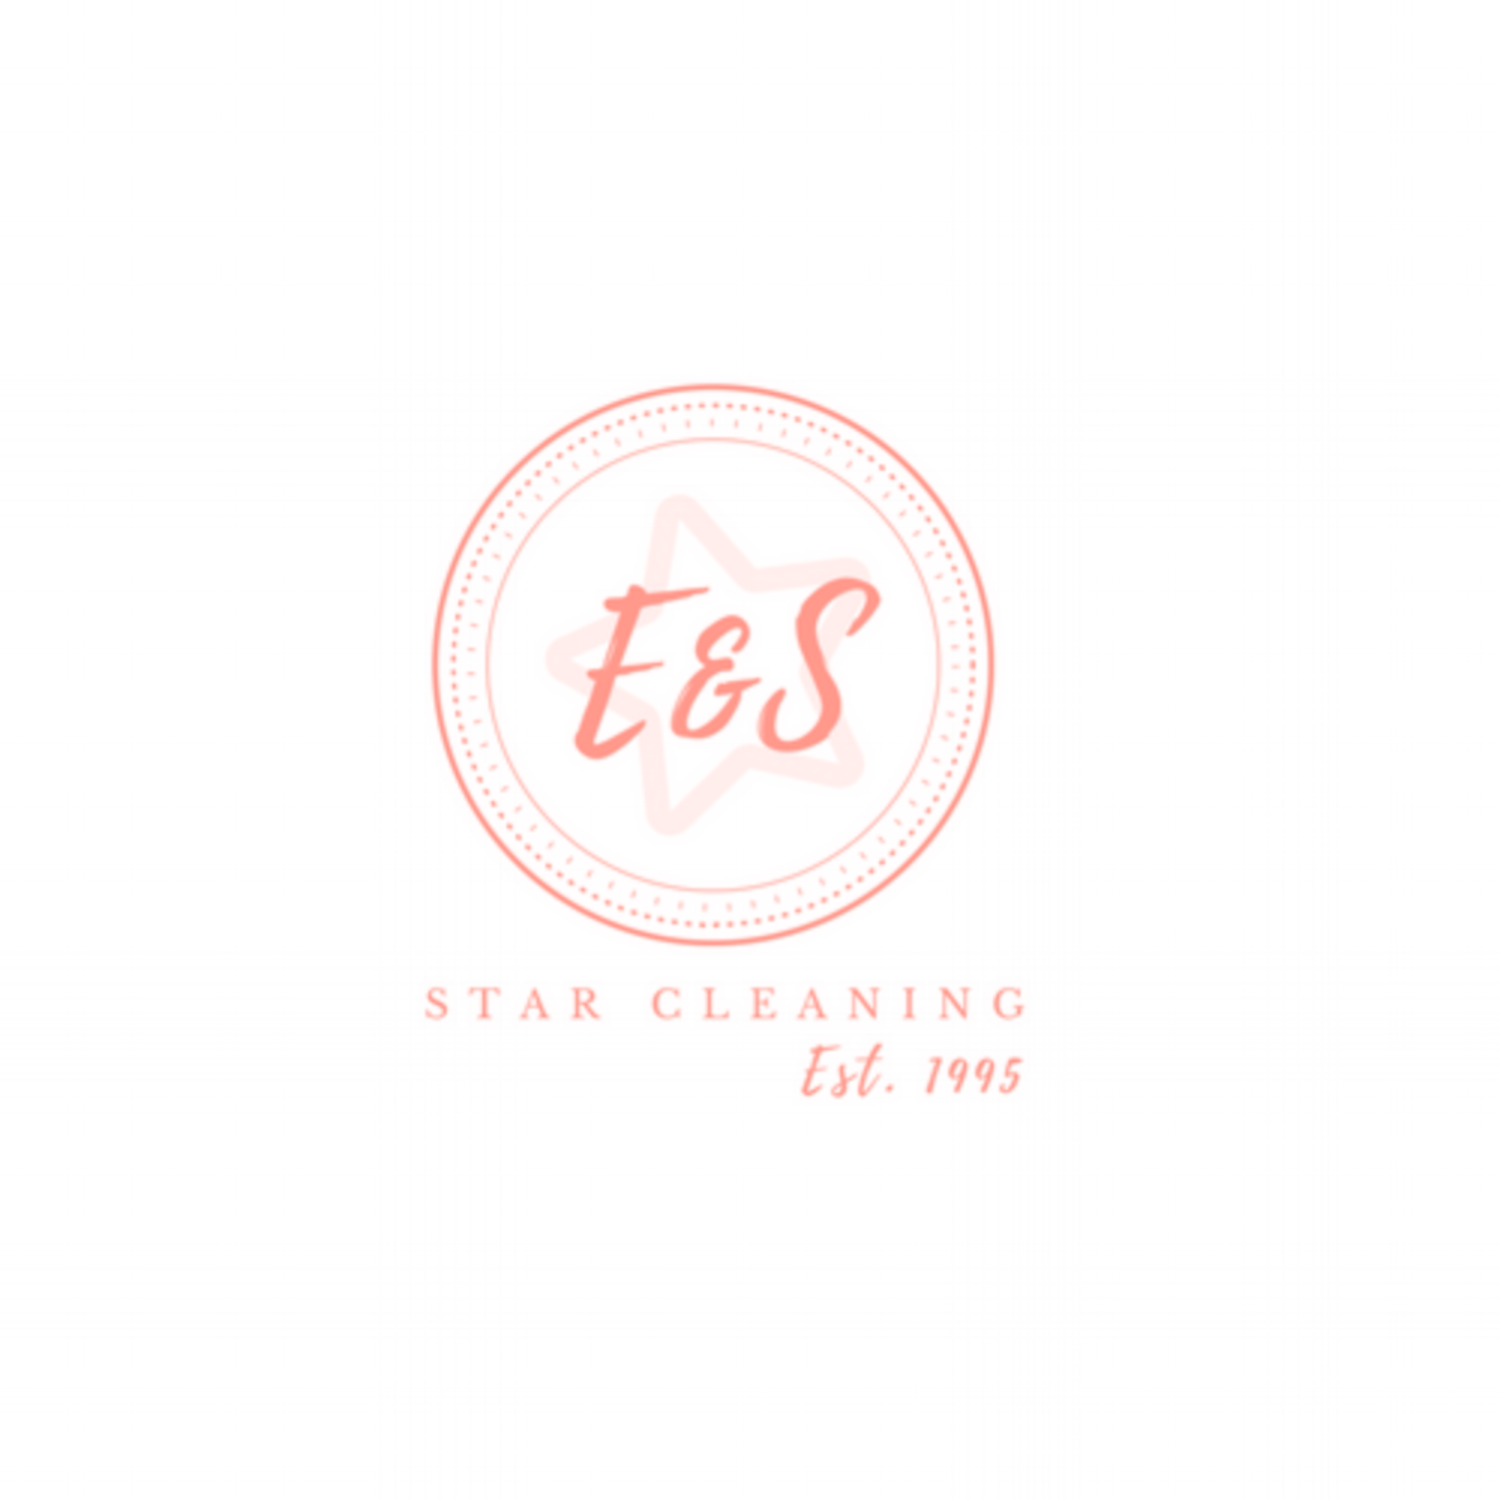 E&S Star Cleaning